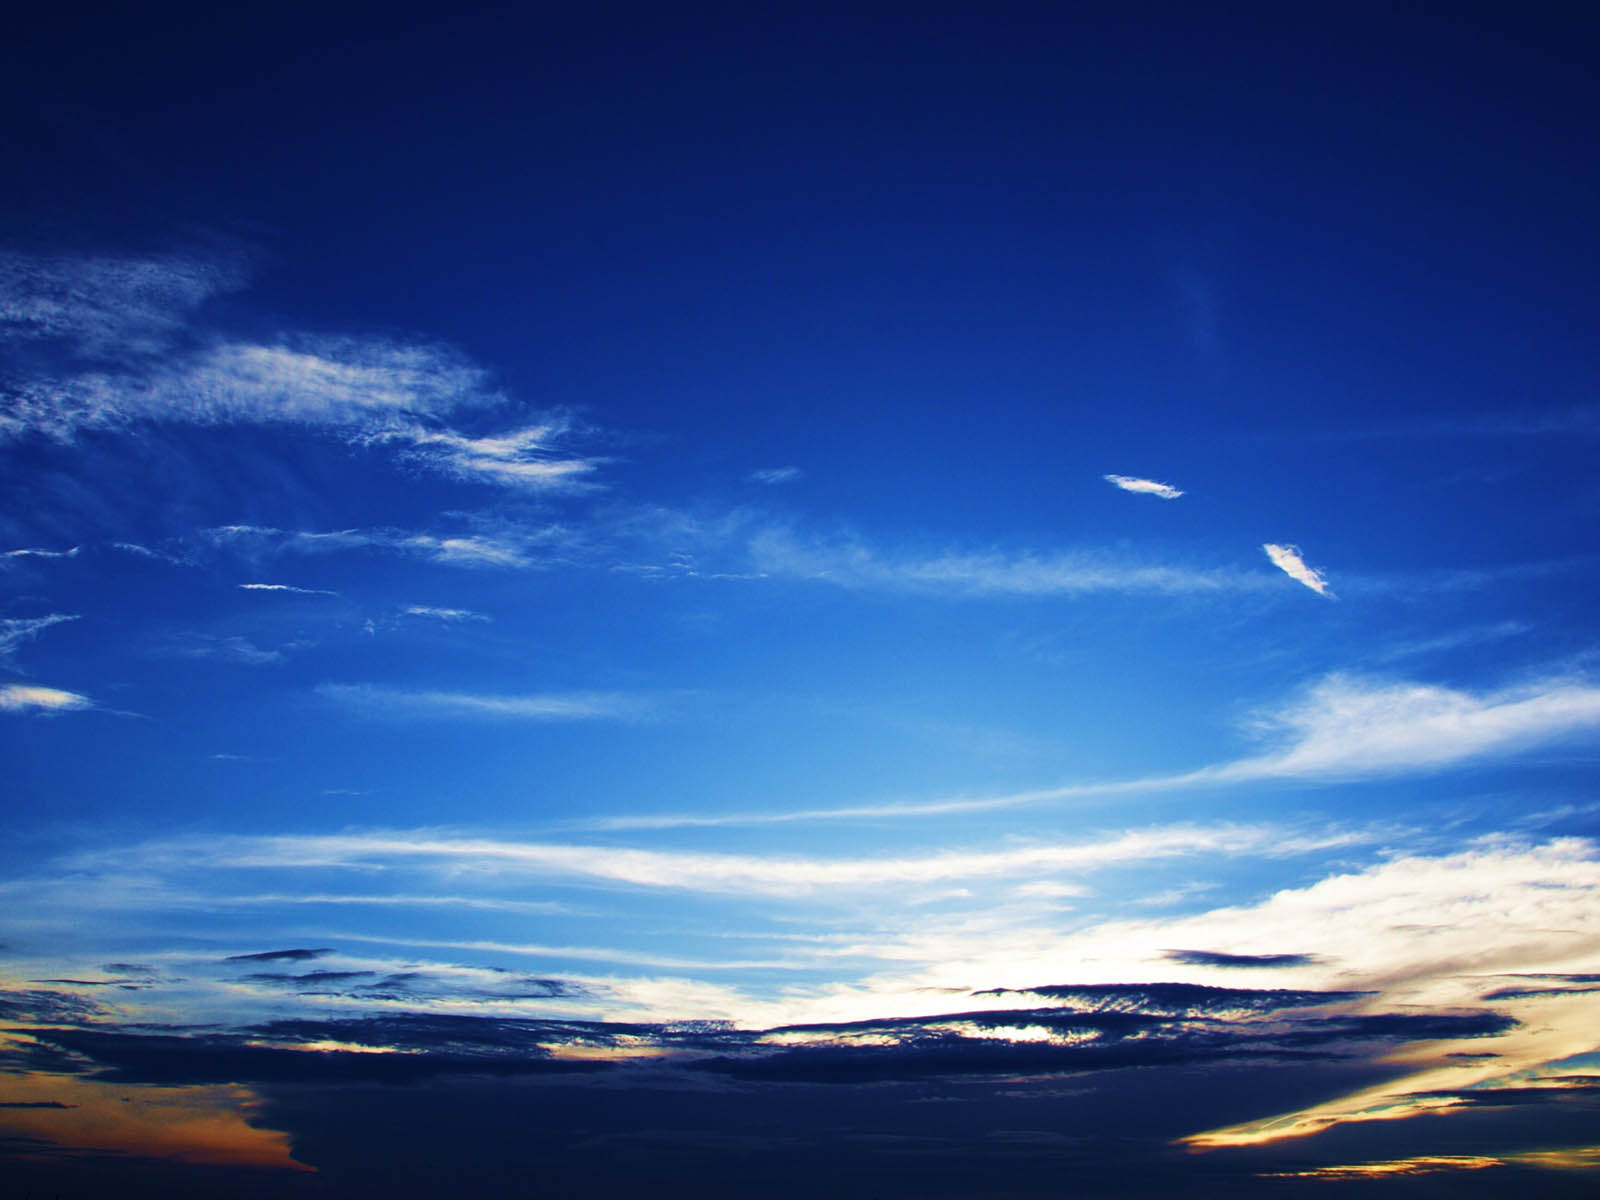 Sky Hd Wallpapers: XS Wallpapers HD: Sky Photos And Wallpapers